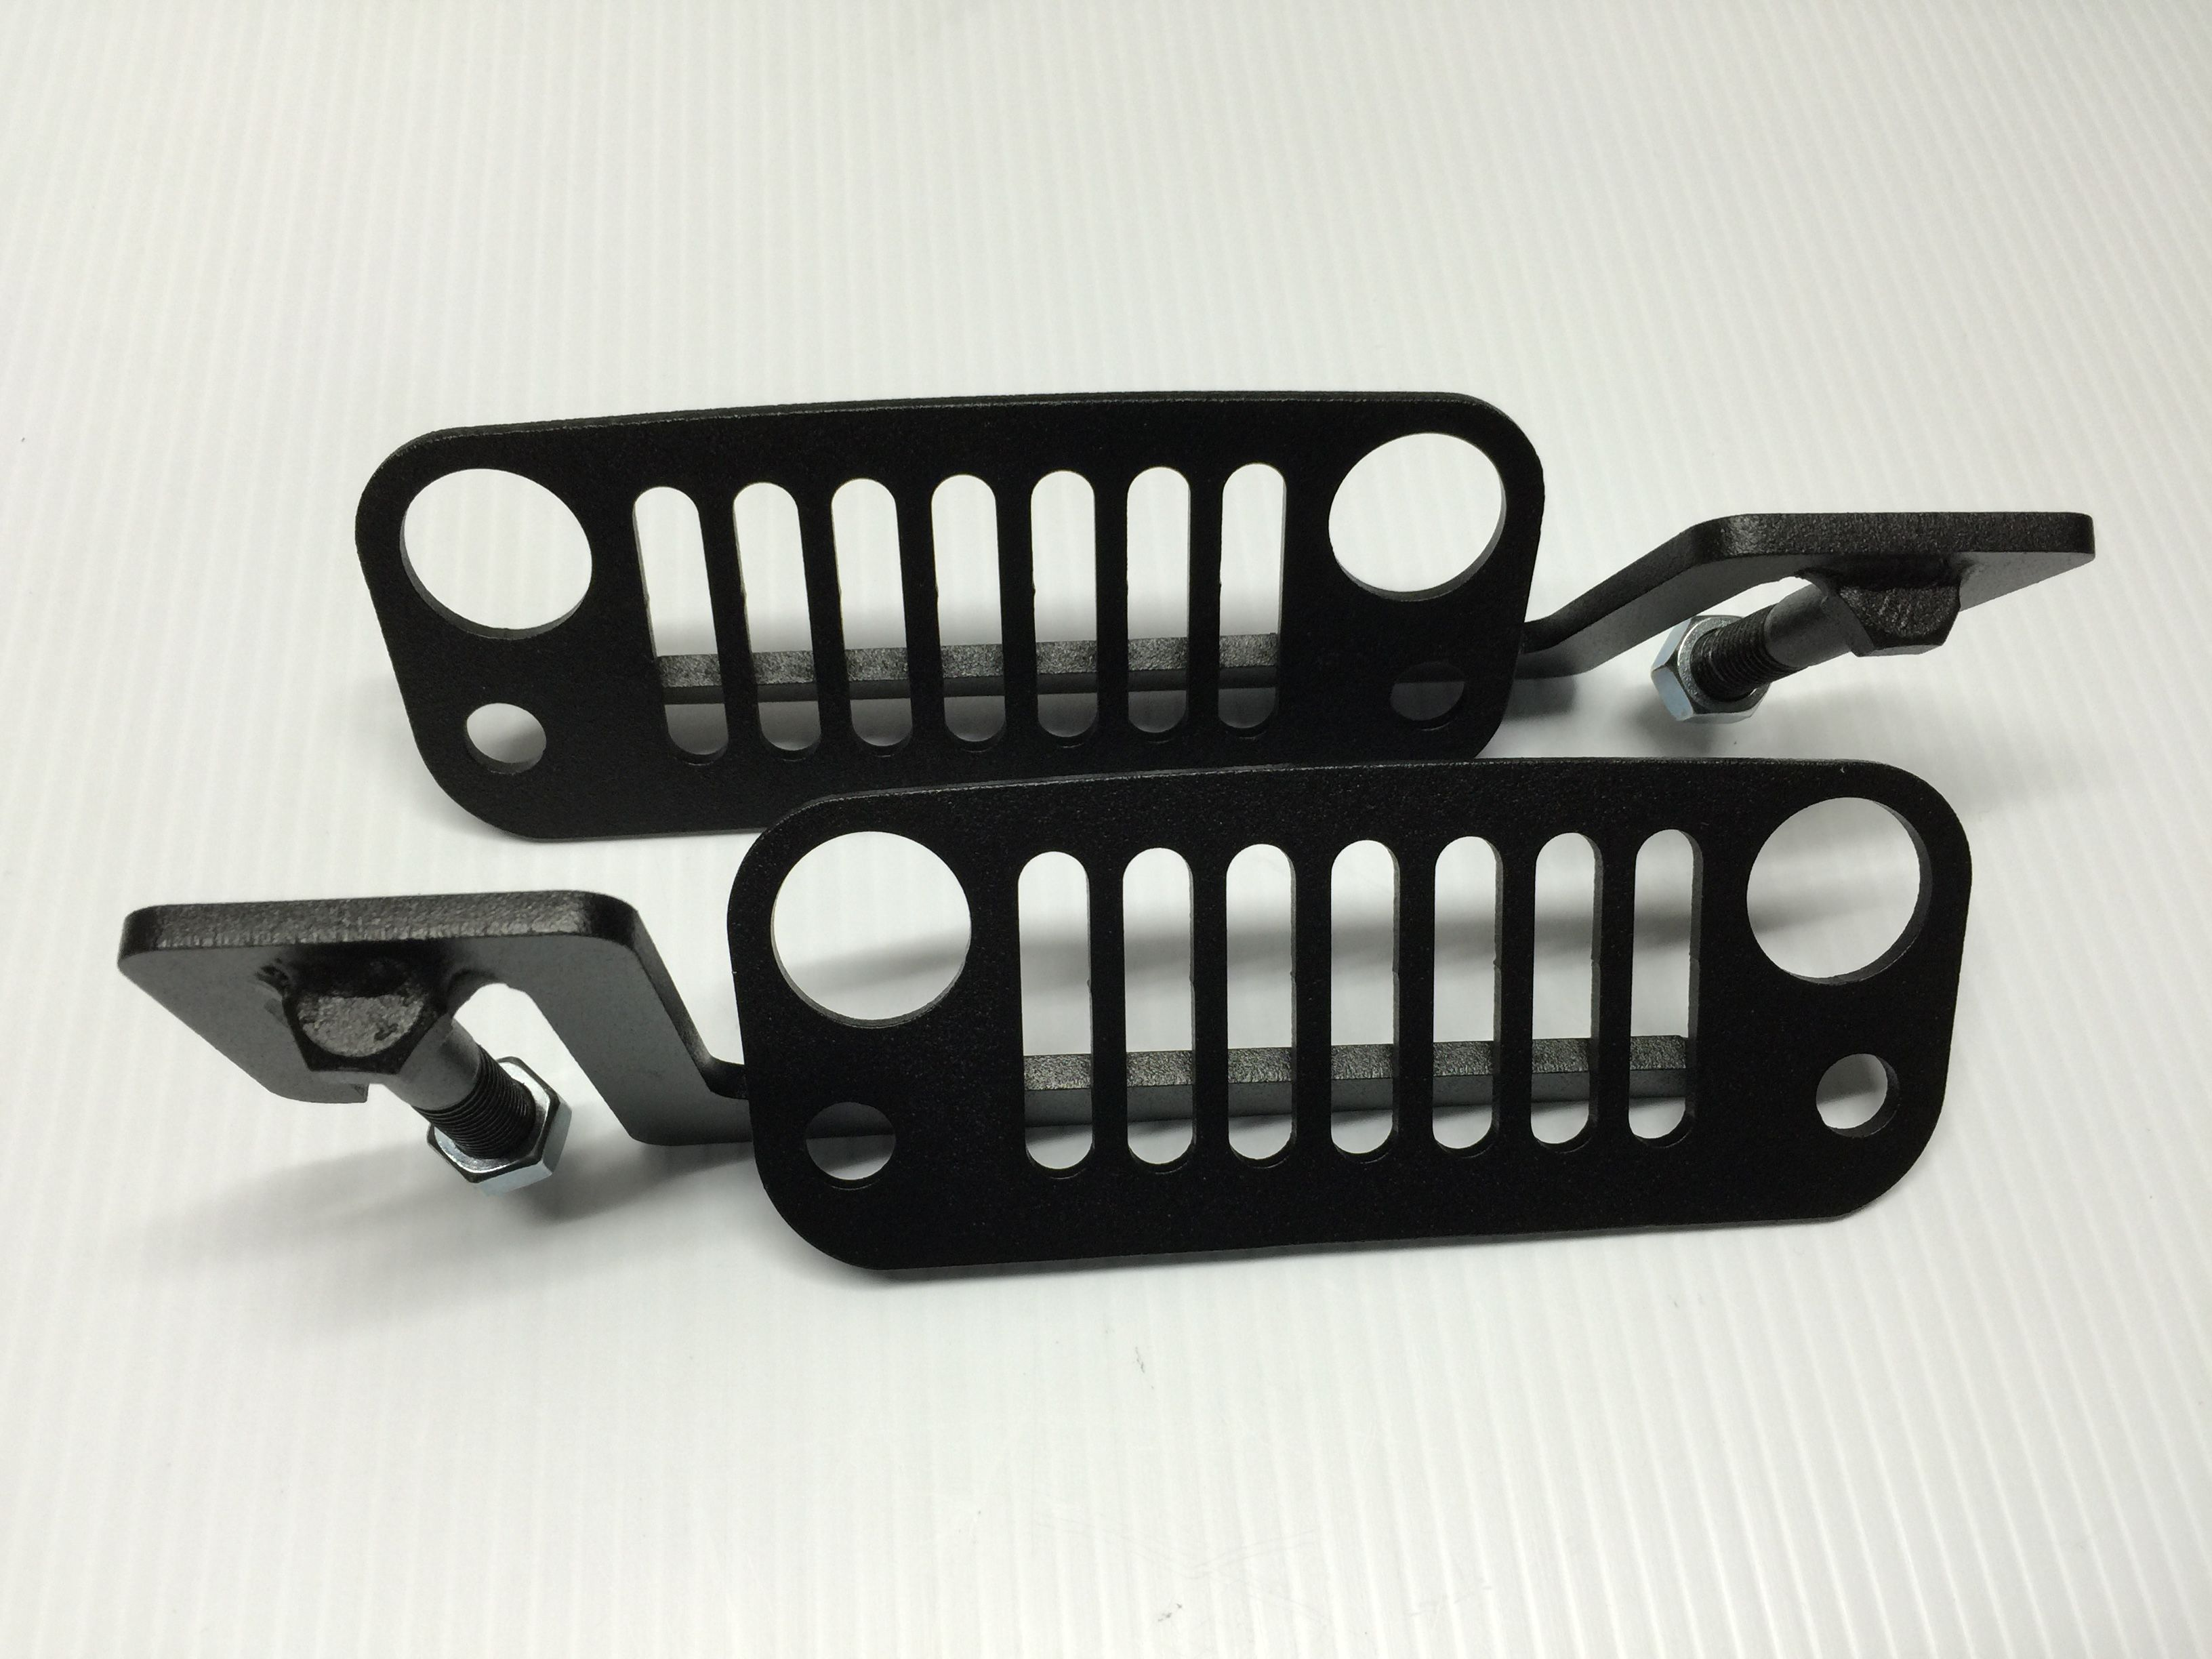 0d68aa7d3217339cf2b5a9b4486c7e5a Take A Look About Jeep Dog Accessories with Captivating Gallery Cars Review